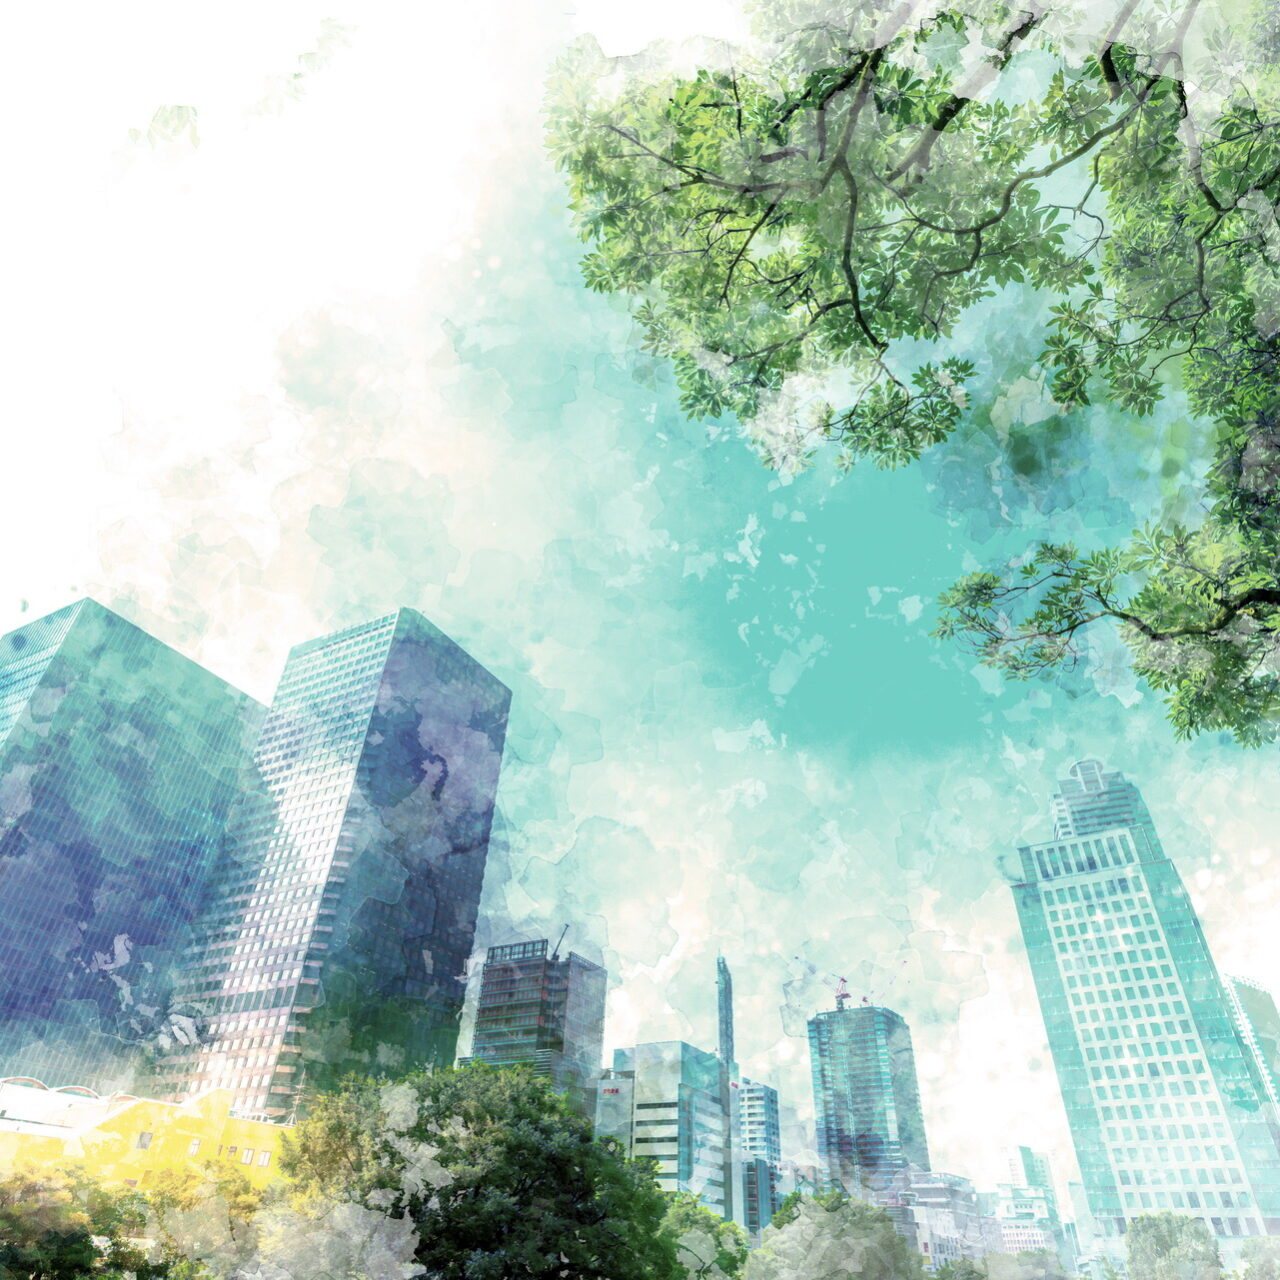 Green Buildings auf Rekordniveau